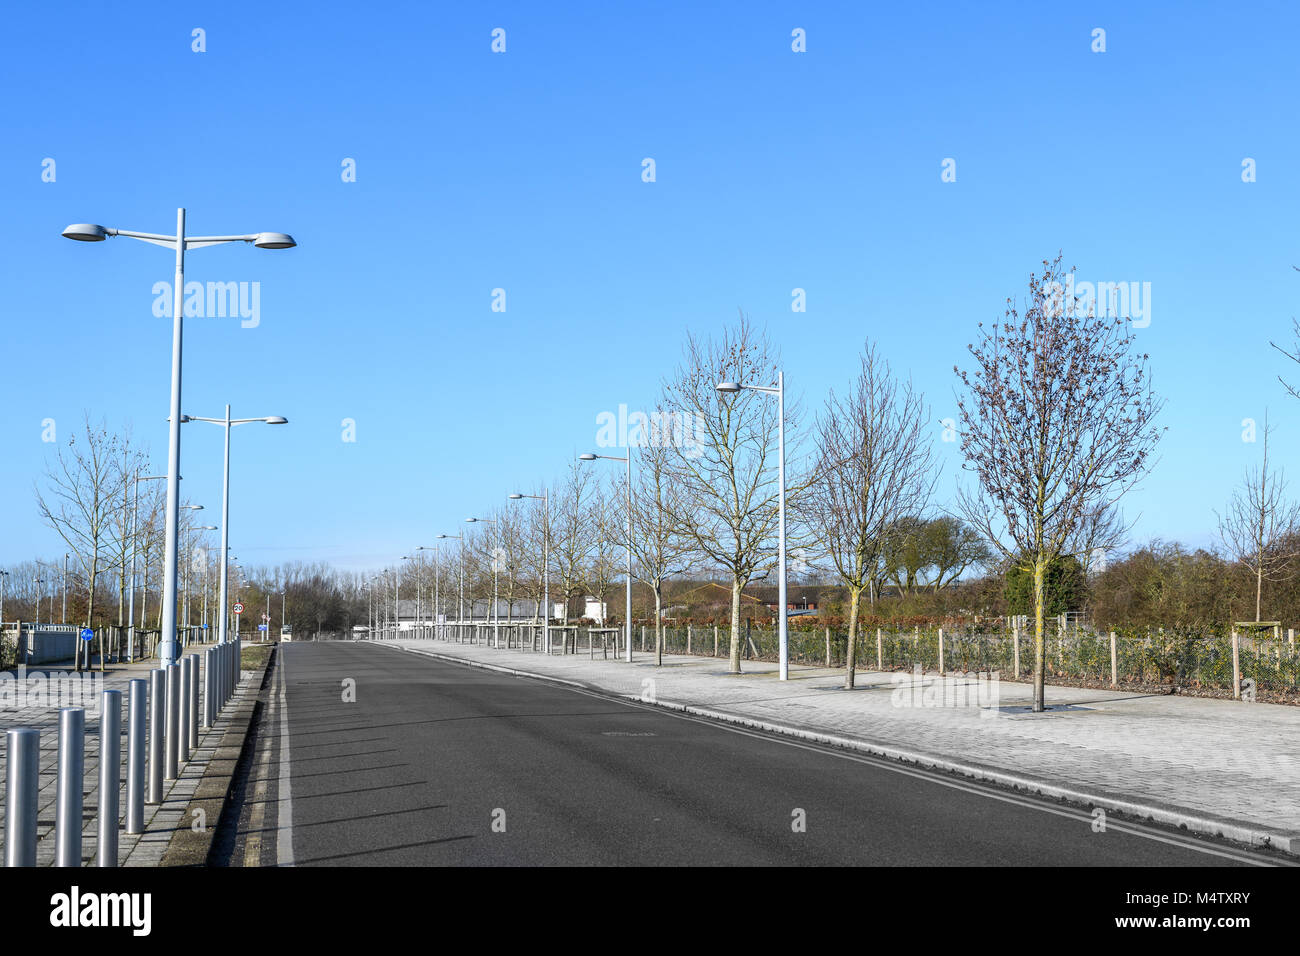 Charles Babbage road at the west Cambridge site of the university in the town of Cambridge, England. - Stock Image